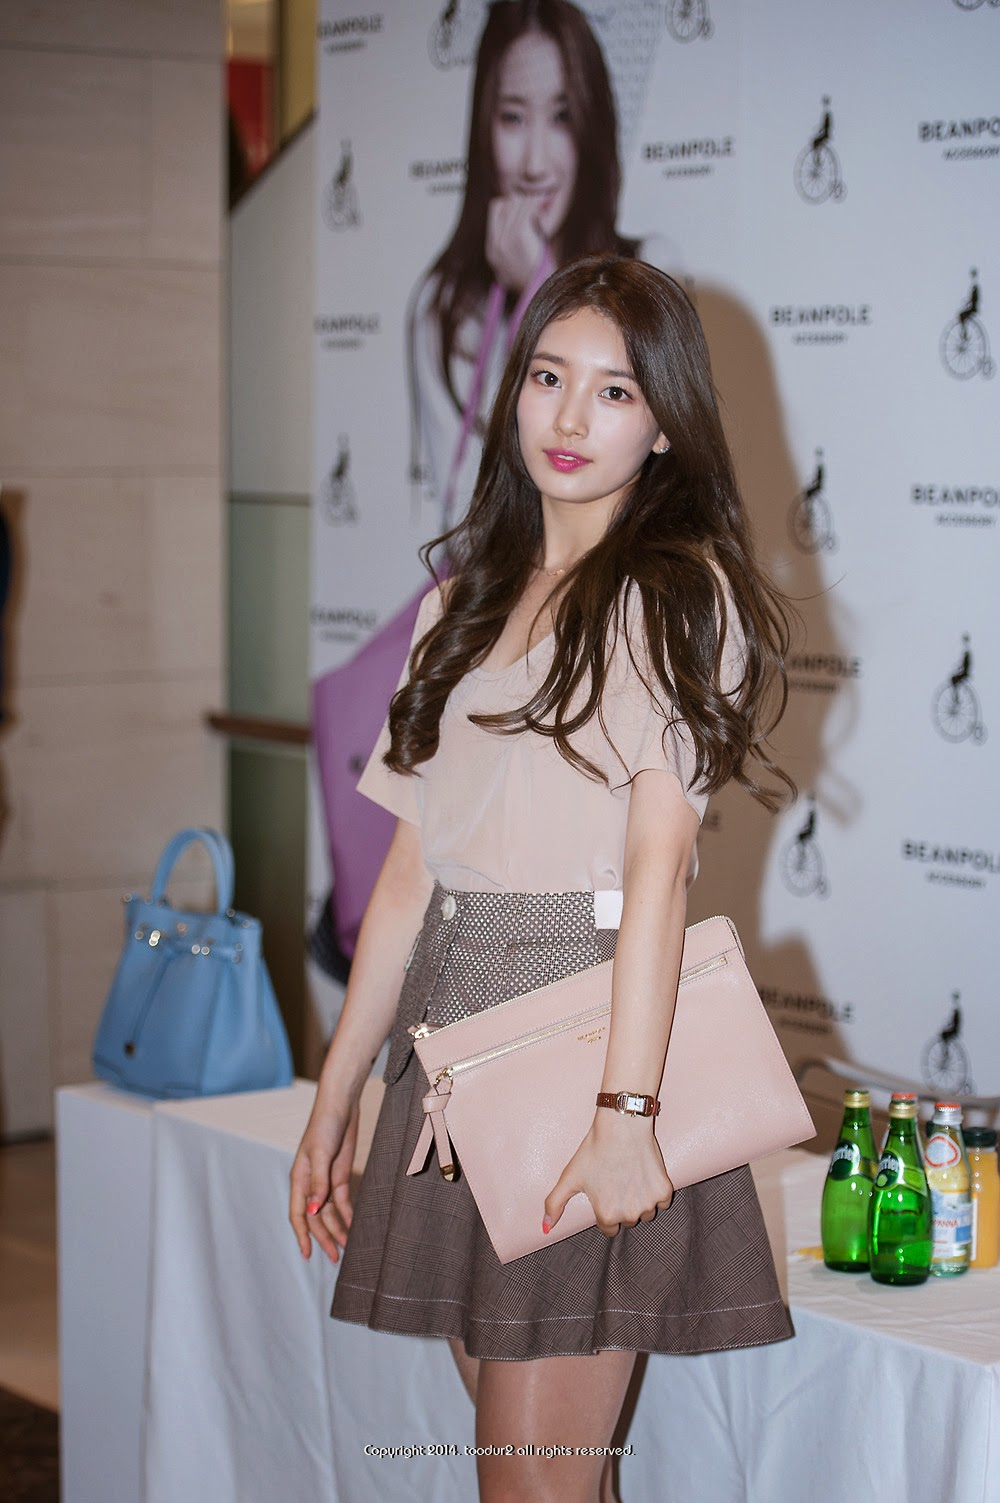 Bae Suzy Android Iphone Wallpaper 37668 Asiachan Kpop